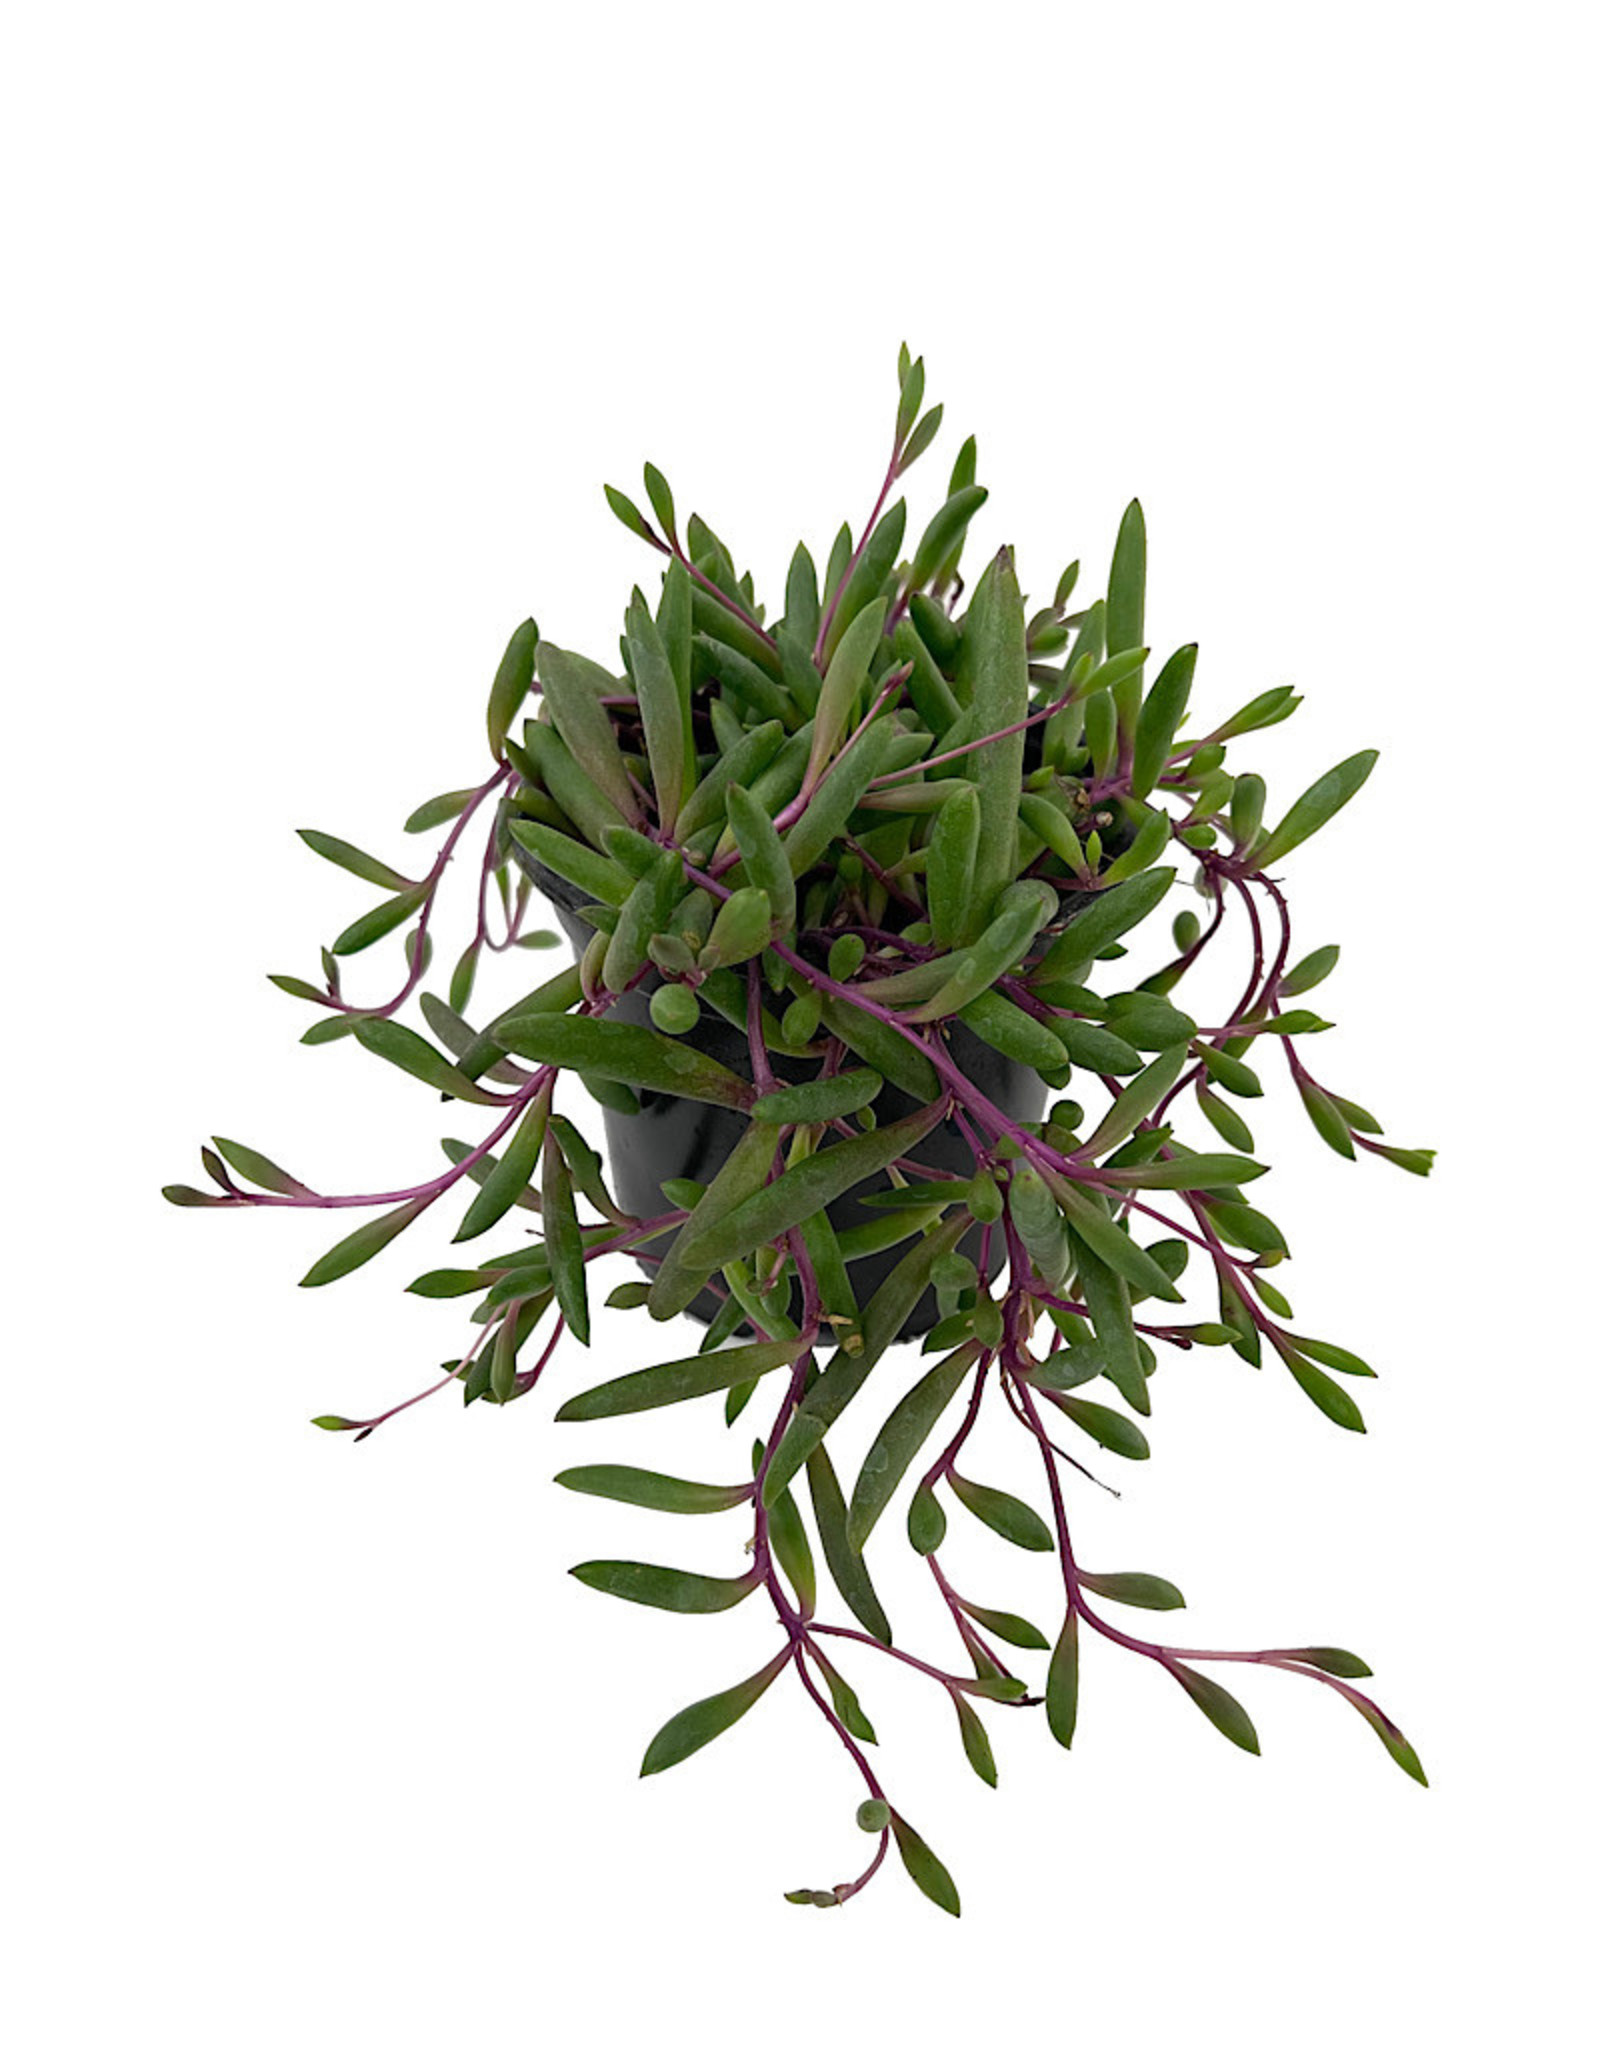 Othonna capensis 'Ruby Necklace' 4 Inch